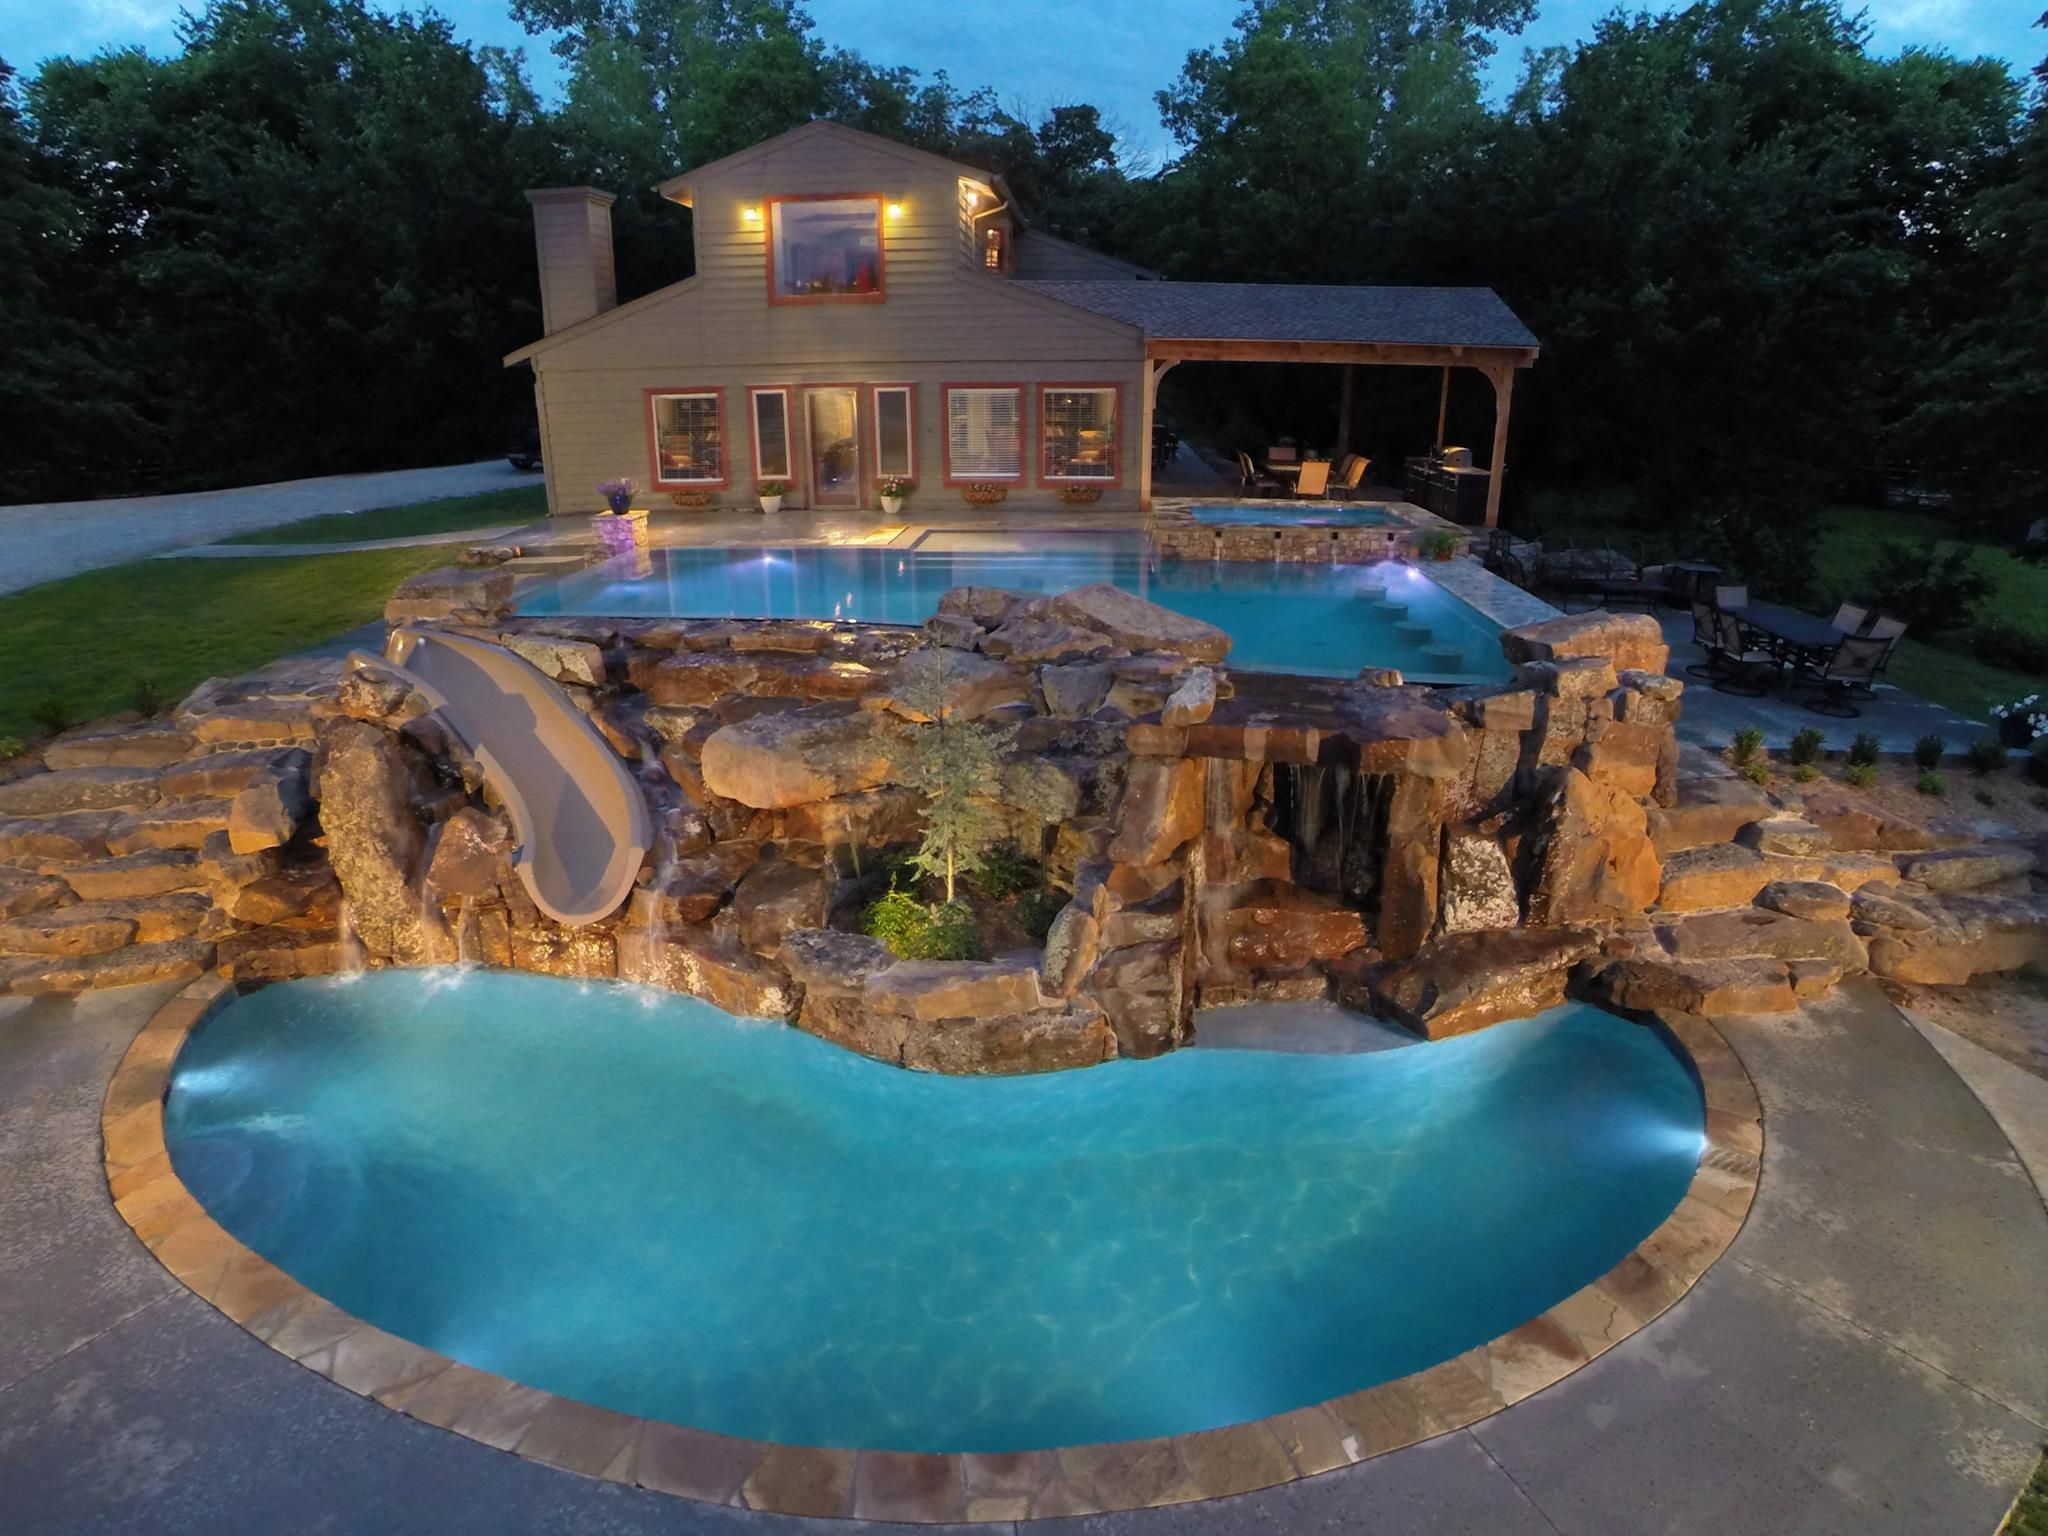 Luxury Swimming Pools With Waterfalls two level luxury pool with waterfalls, slide, swim up bar and spa